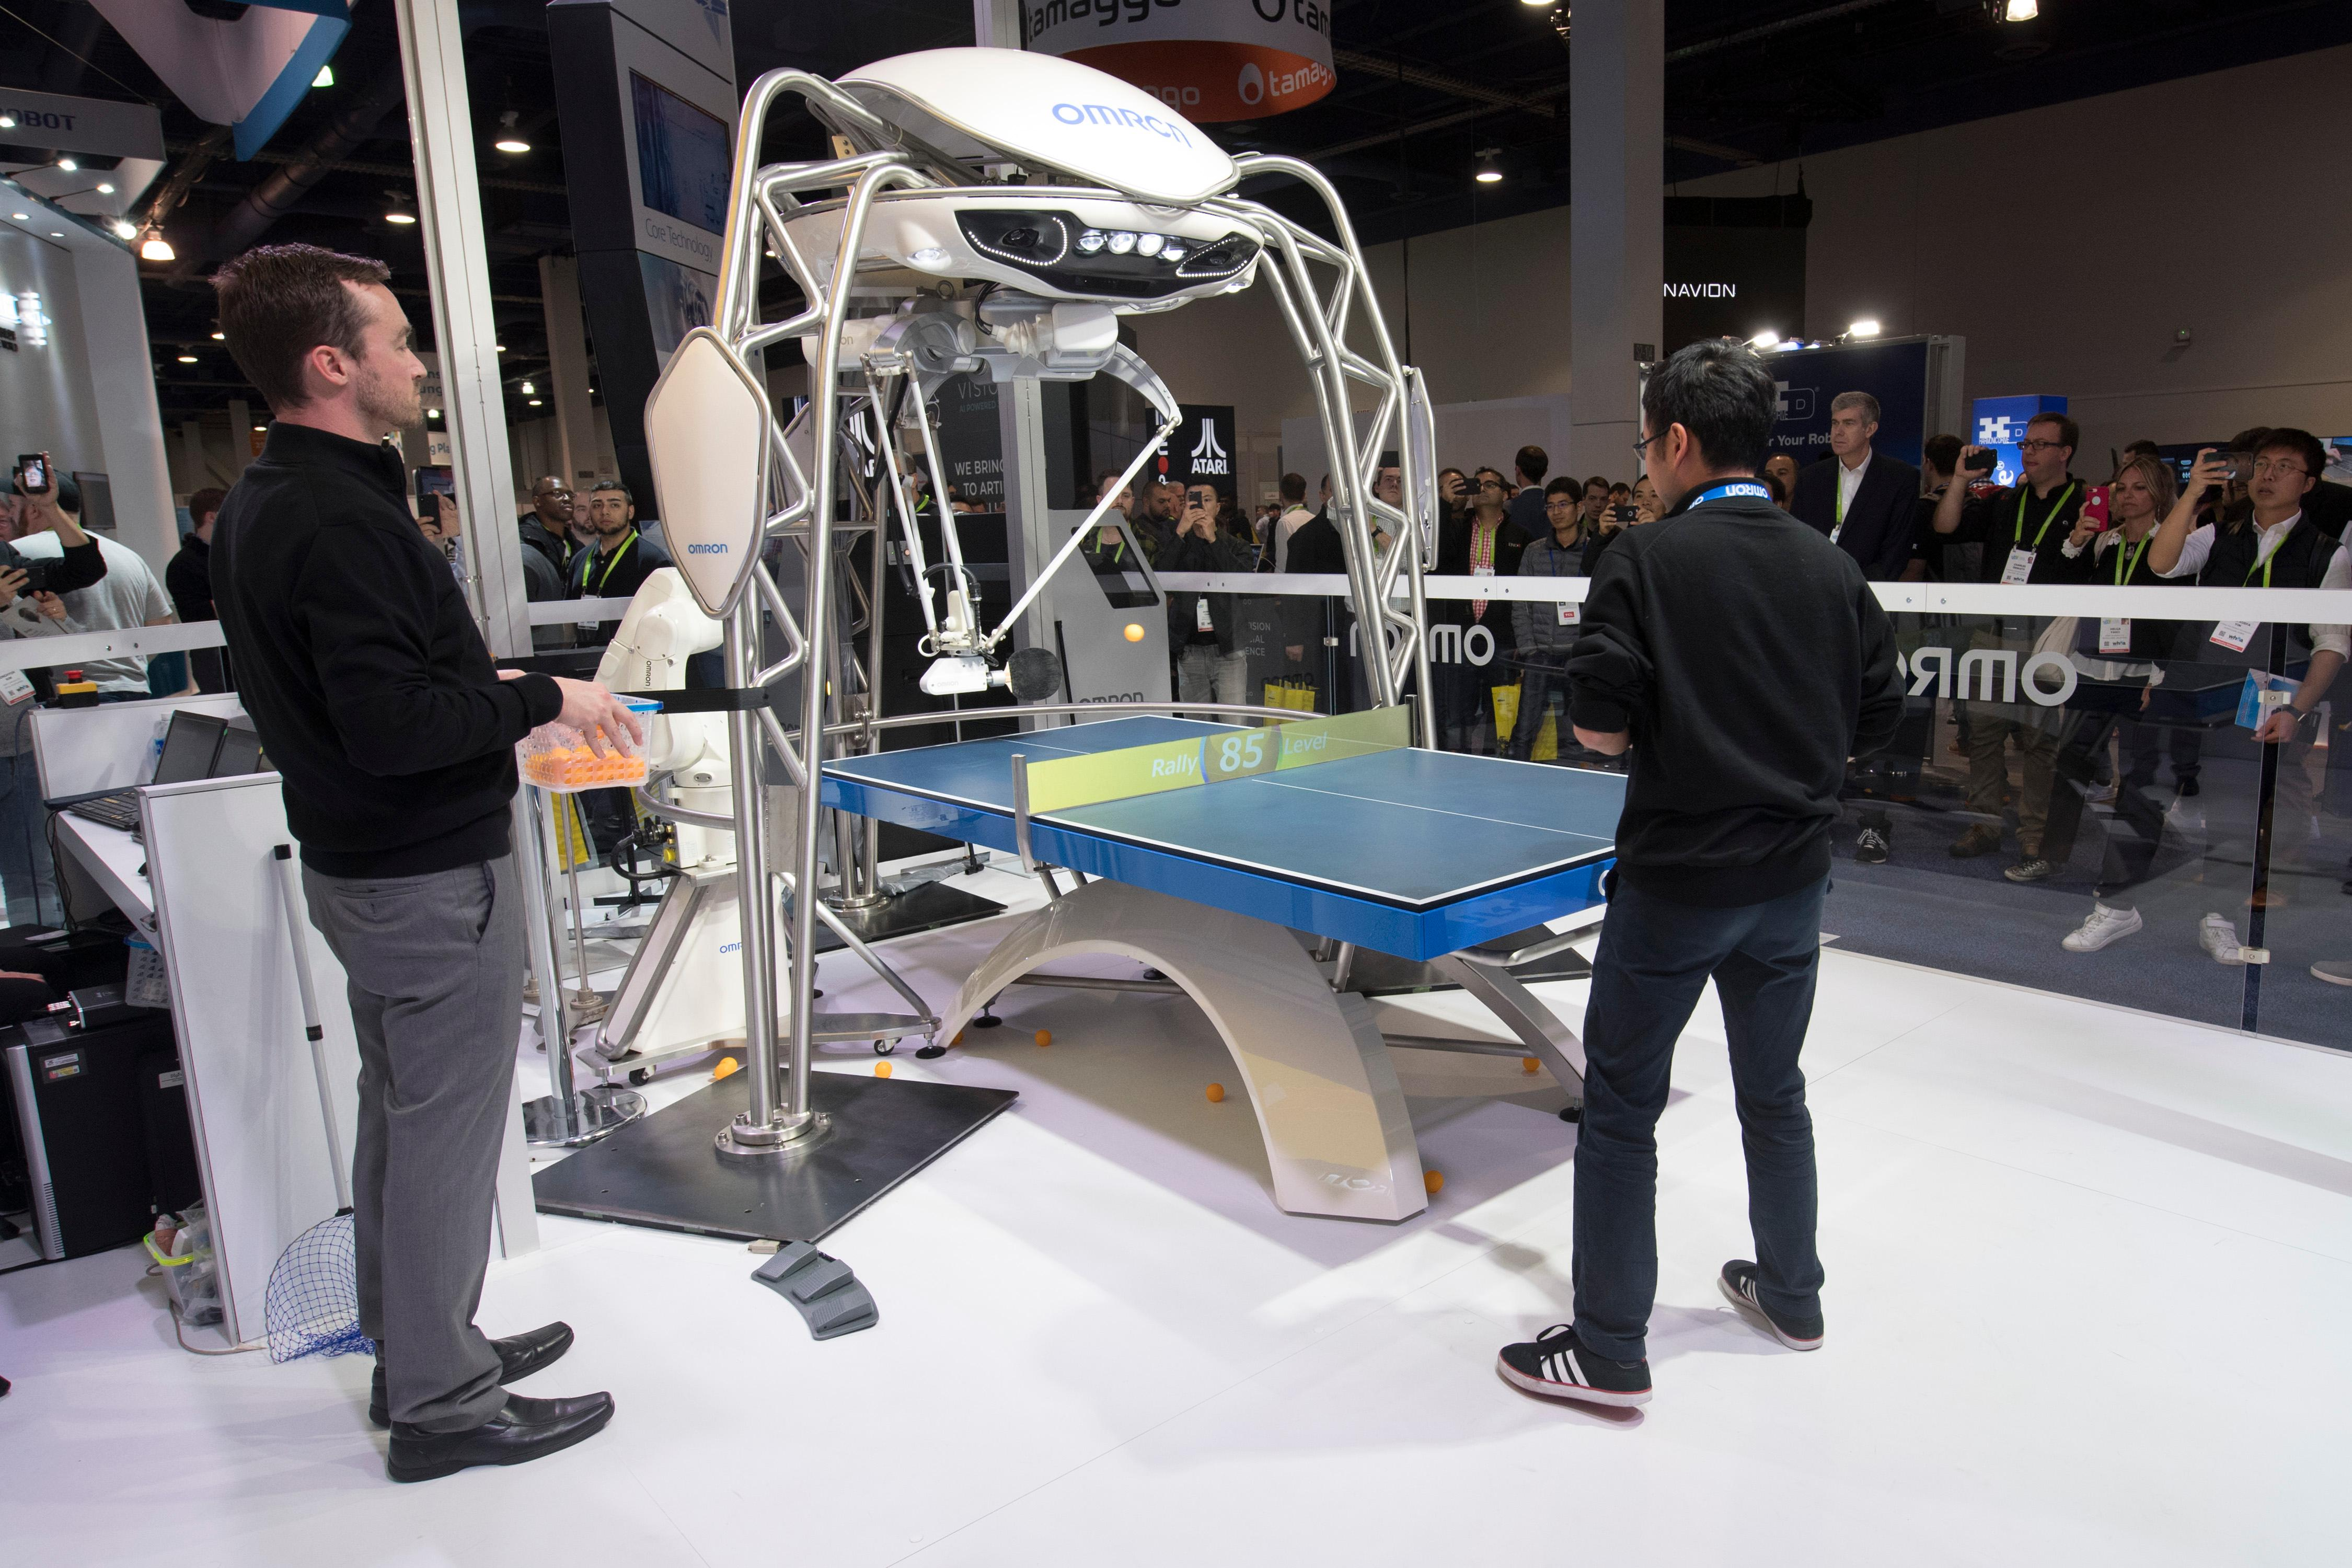 A man plays table tennis against a robot from Omron during the second day of CES Wednesday, January 10, 2018, at the Las Vegas Convention Center. CREDIT: Sam Morris/Las Vegas News Bureau